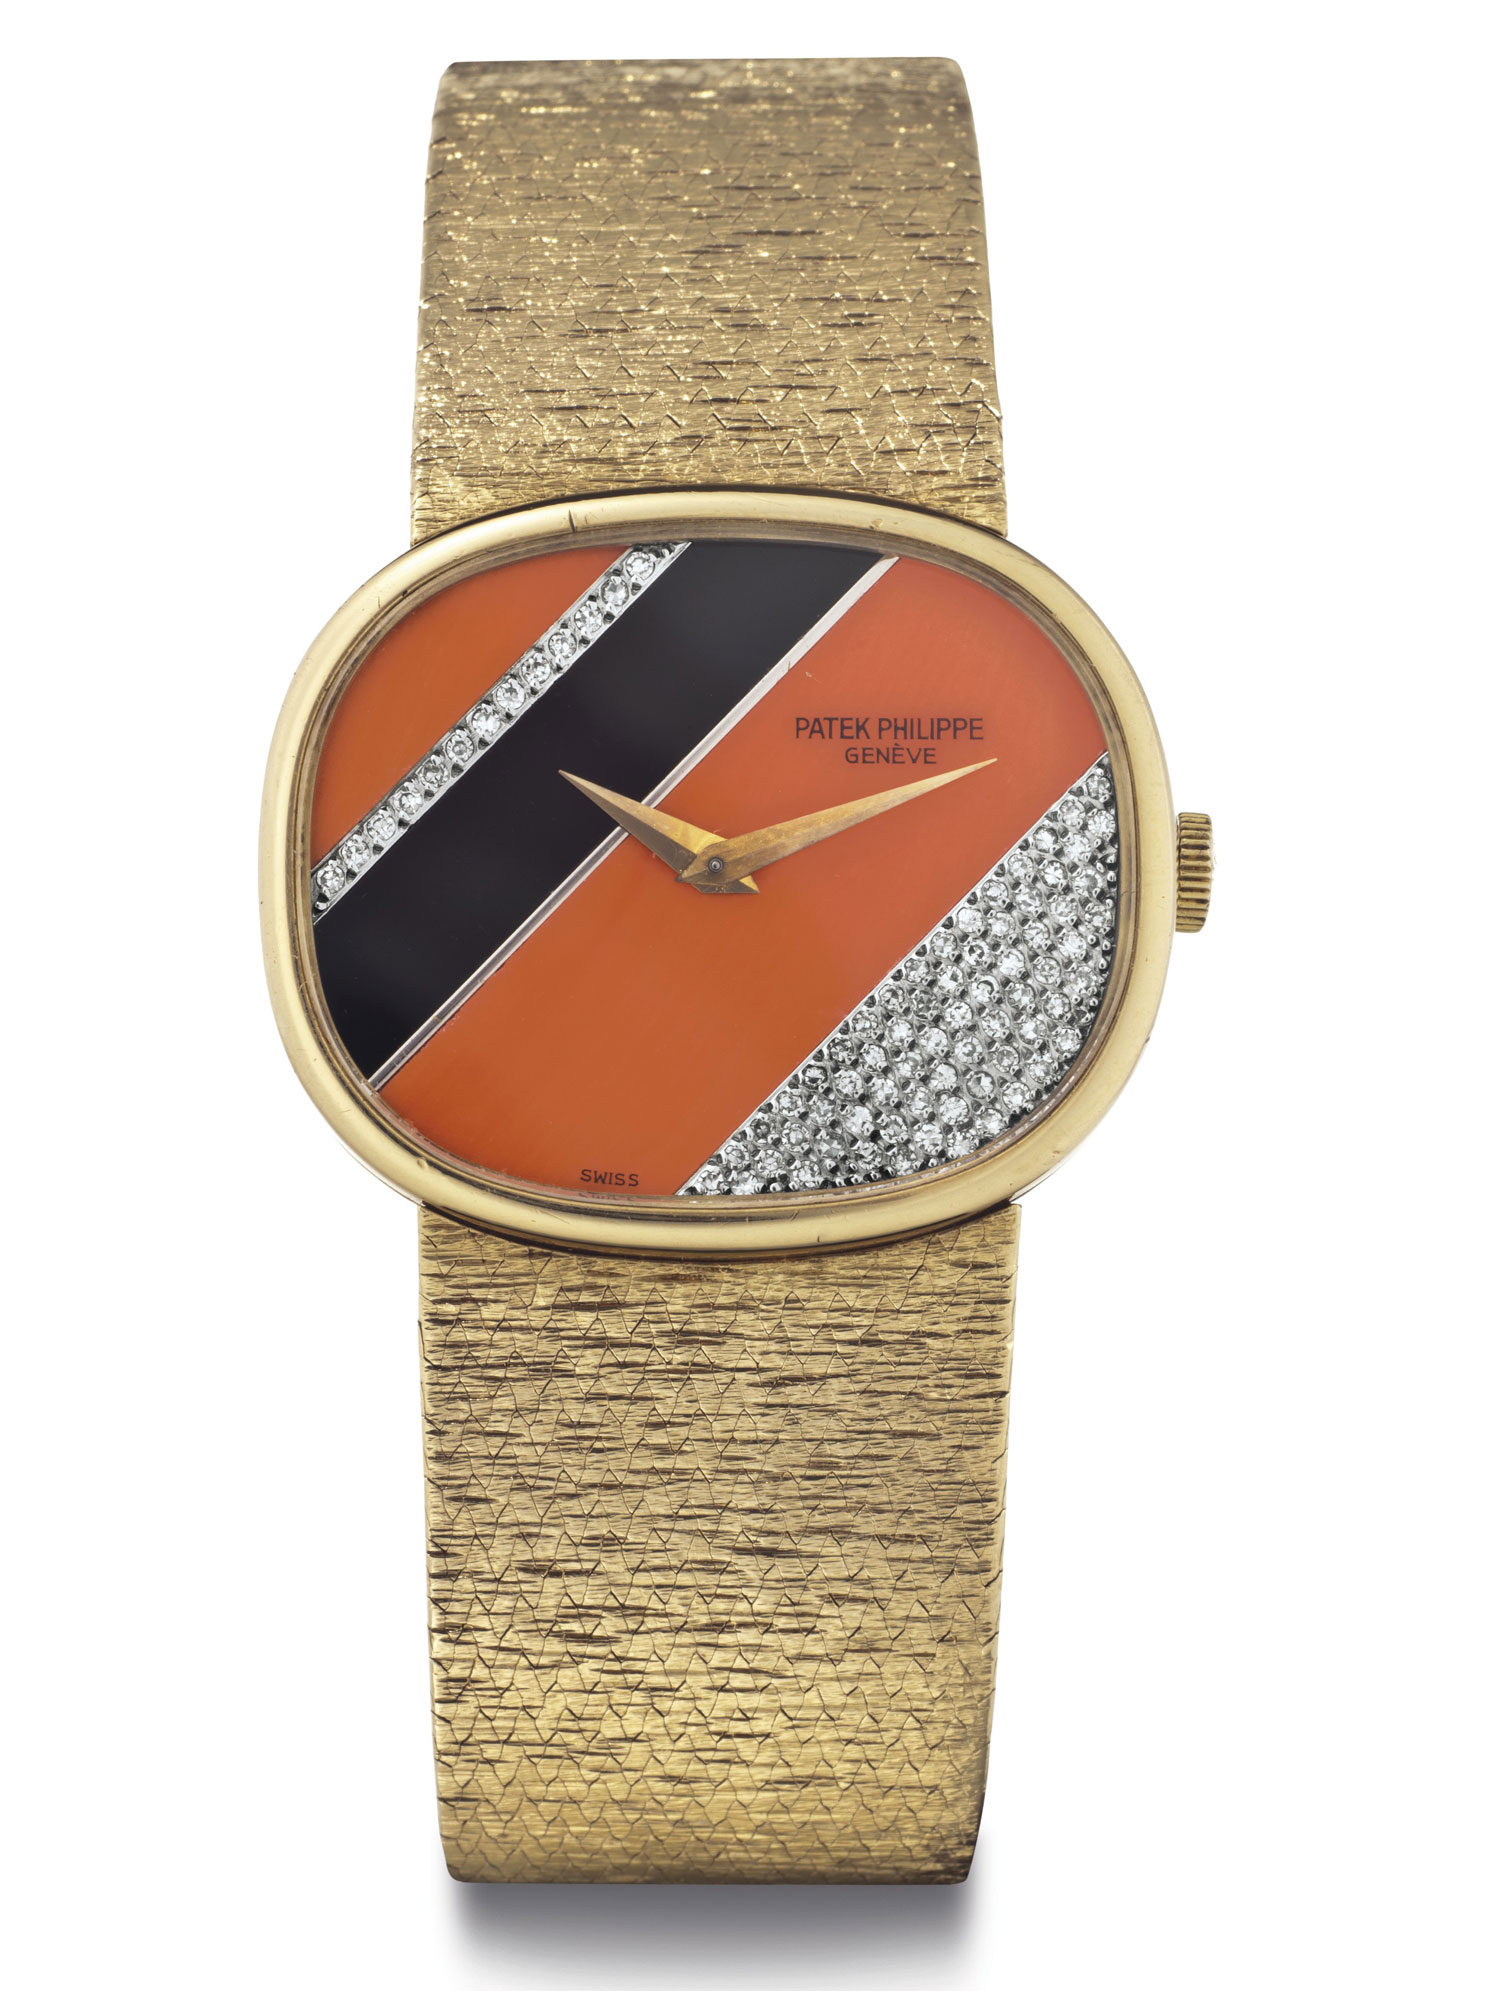 <b>Patek Philippe: Ref. 3845/909 (1977)</b><br/>A Fine 18k gold, coral, onyx, and diamond bracelet wristwatch<br/>Lot 50: Rare Watches and Exceptional Complications sale<br/><i>Estimate: $10,000 – $15,000</i>